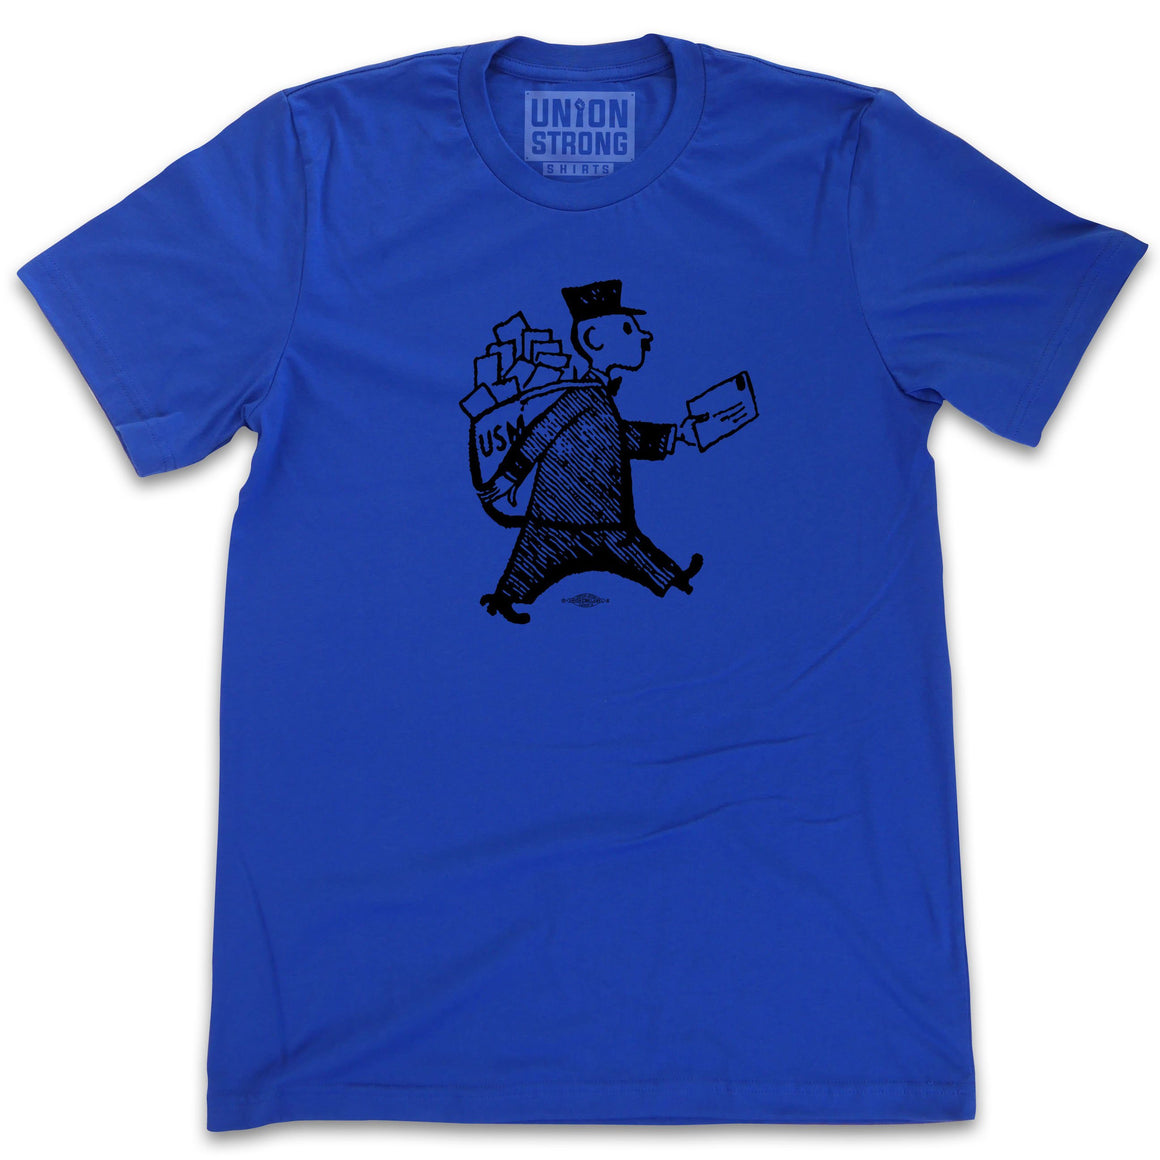 US Mailman Sketch Shirts unionstrongshirts